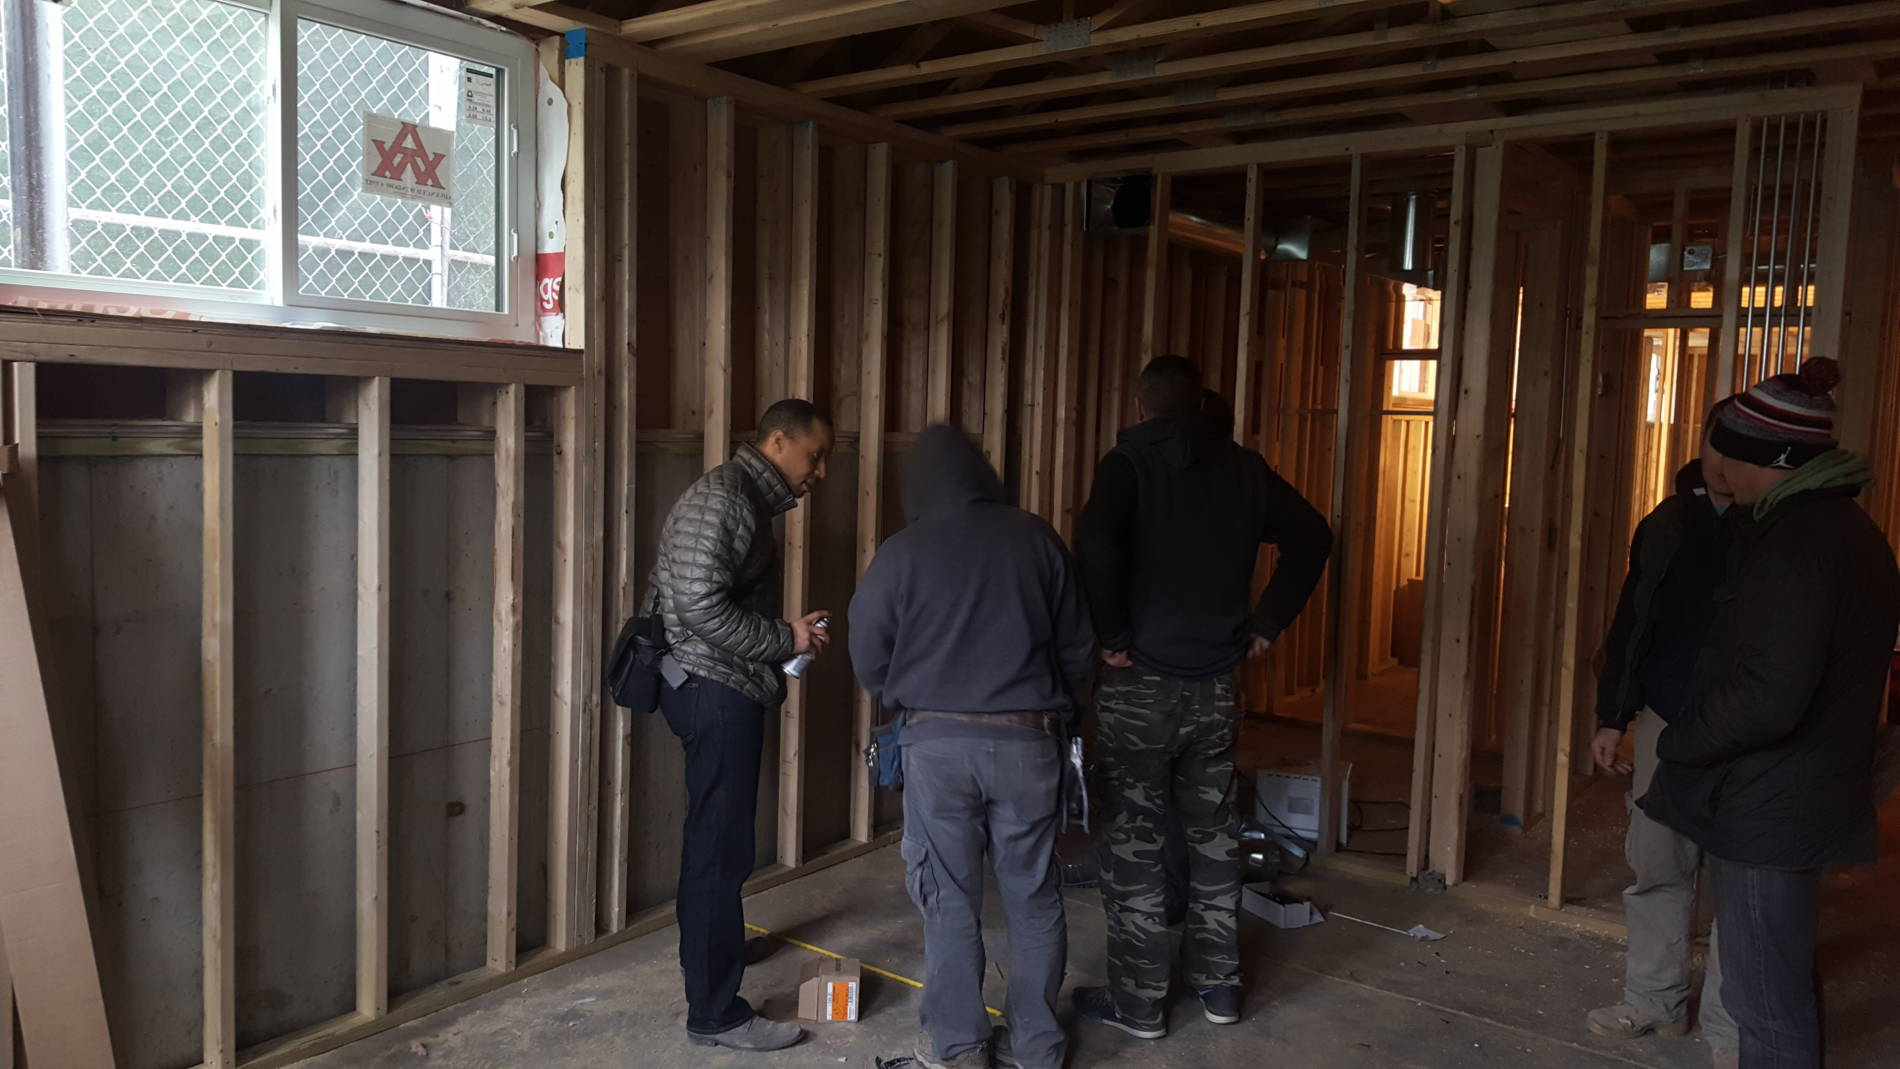 3423 n bell soffit layout basement rec room out2_3.8.17